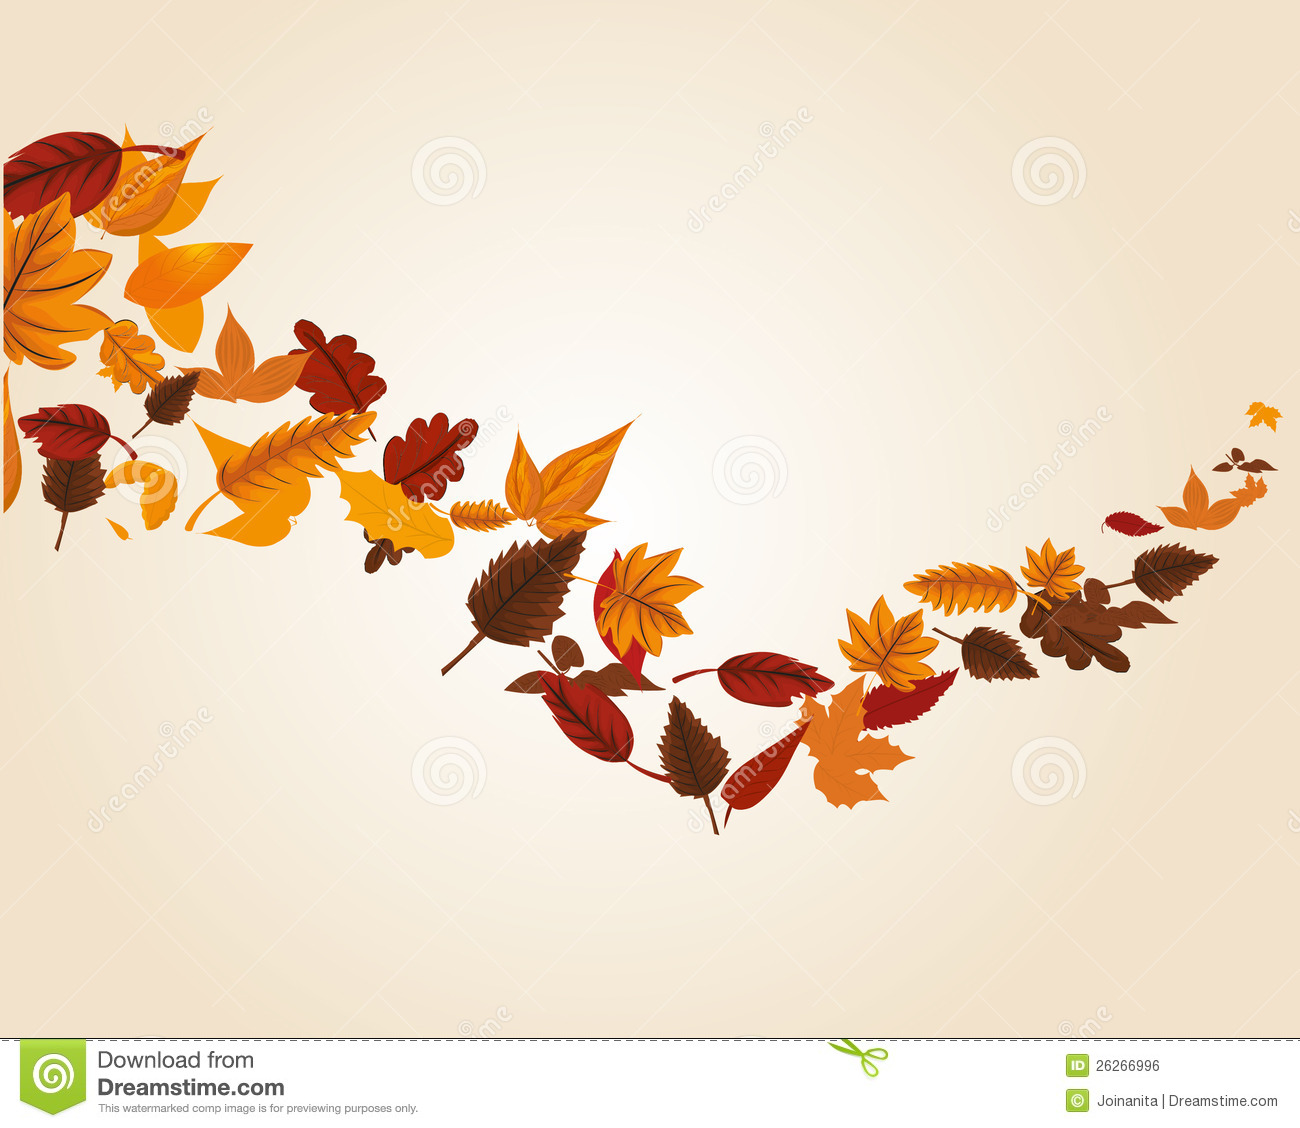 Maple Leaf Wallpaper For Fall Season Autumn Leaves Swirl Royalty Free Stock Image Image 26266996